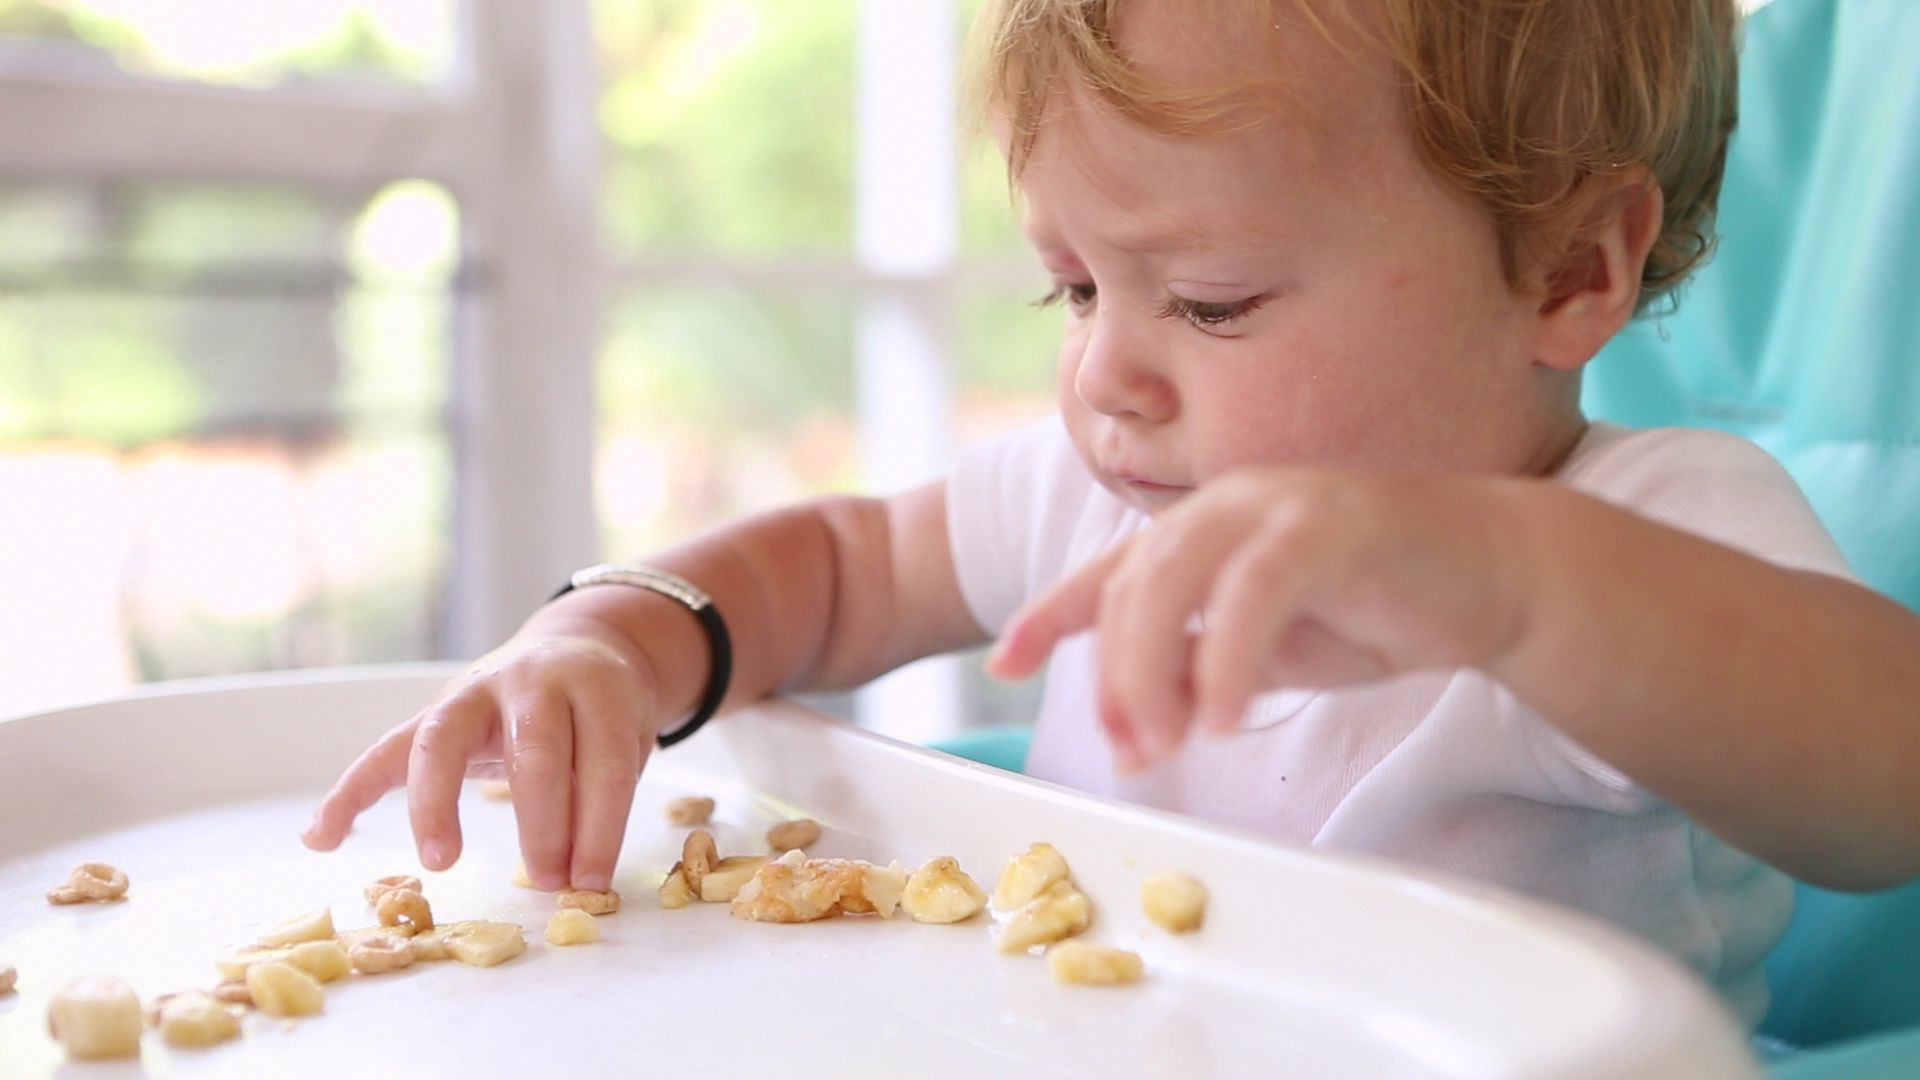 Weaning A Baby Off Formula Baby Led Weaning Do S And Don Ts